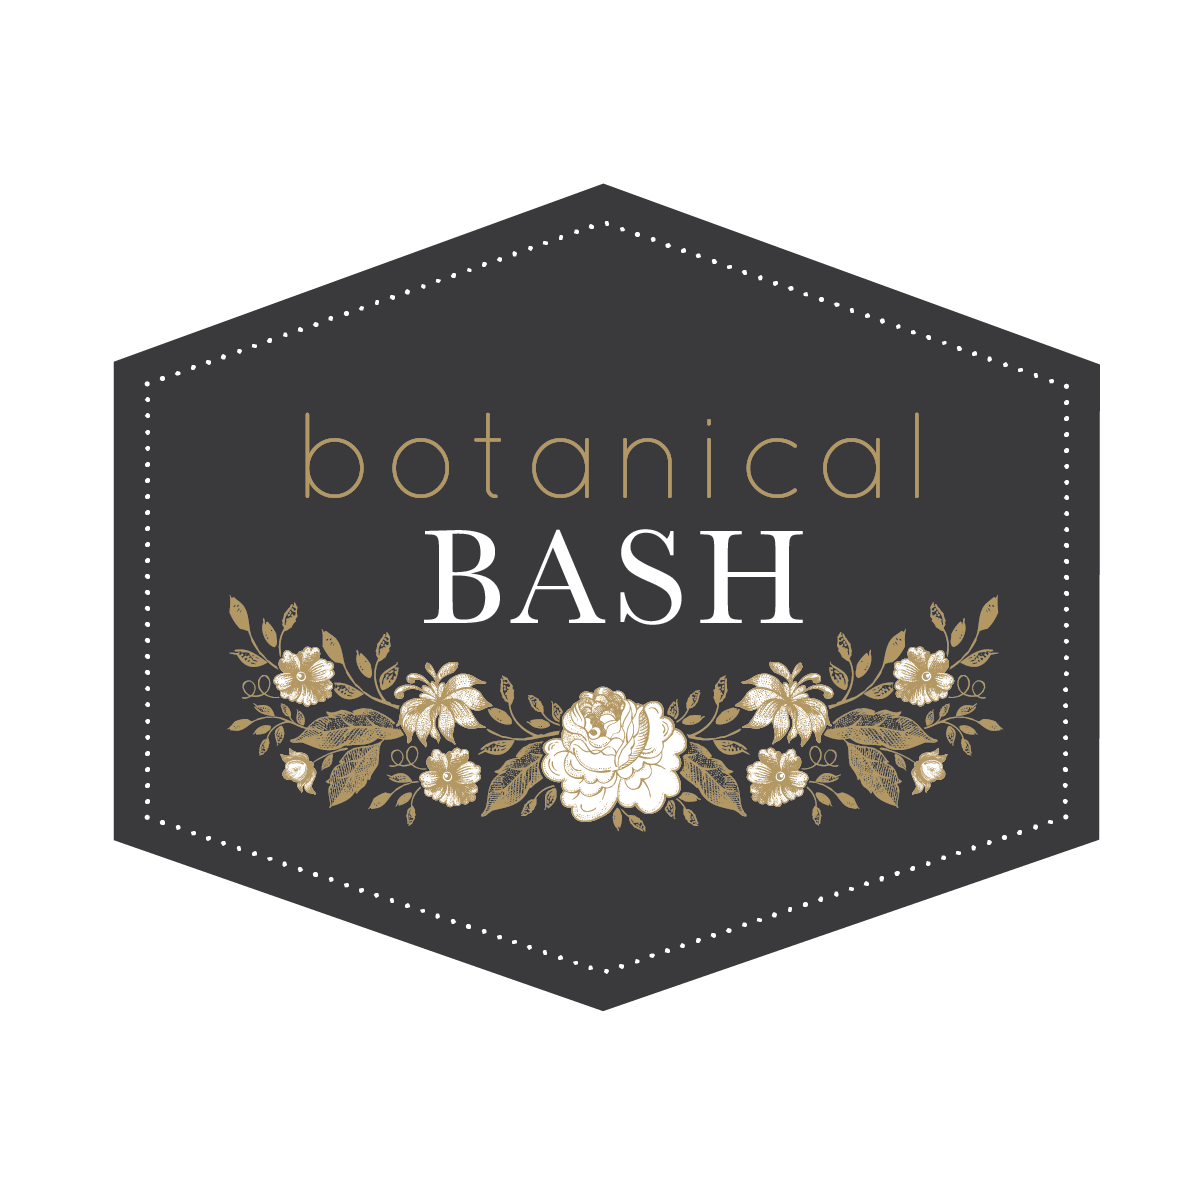 Botanical Bash